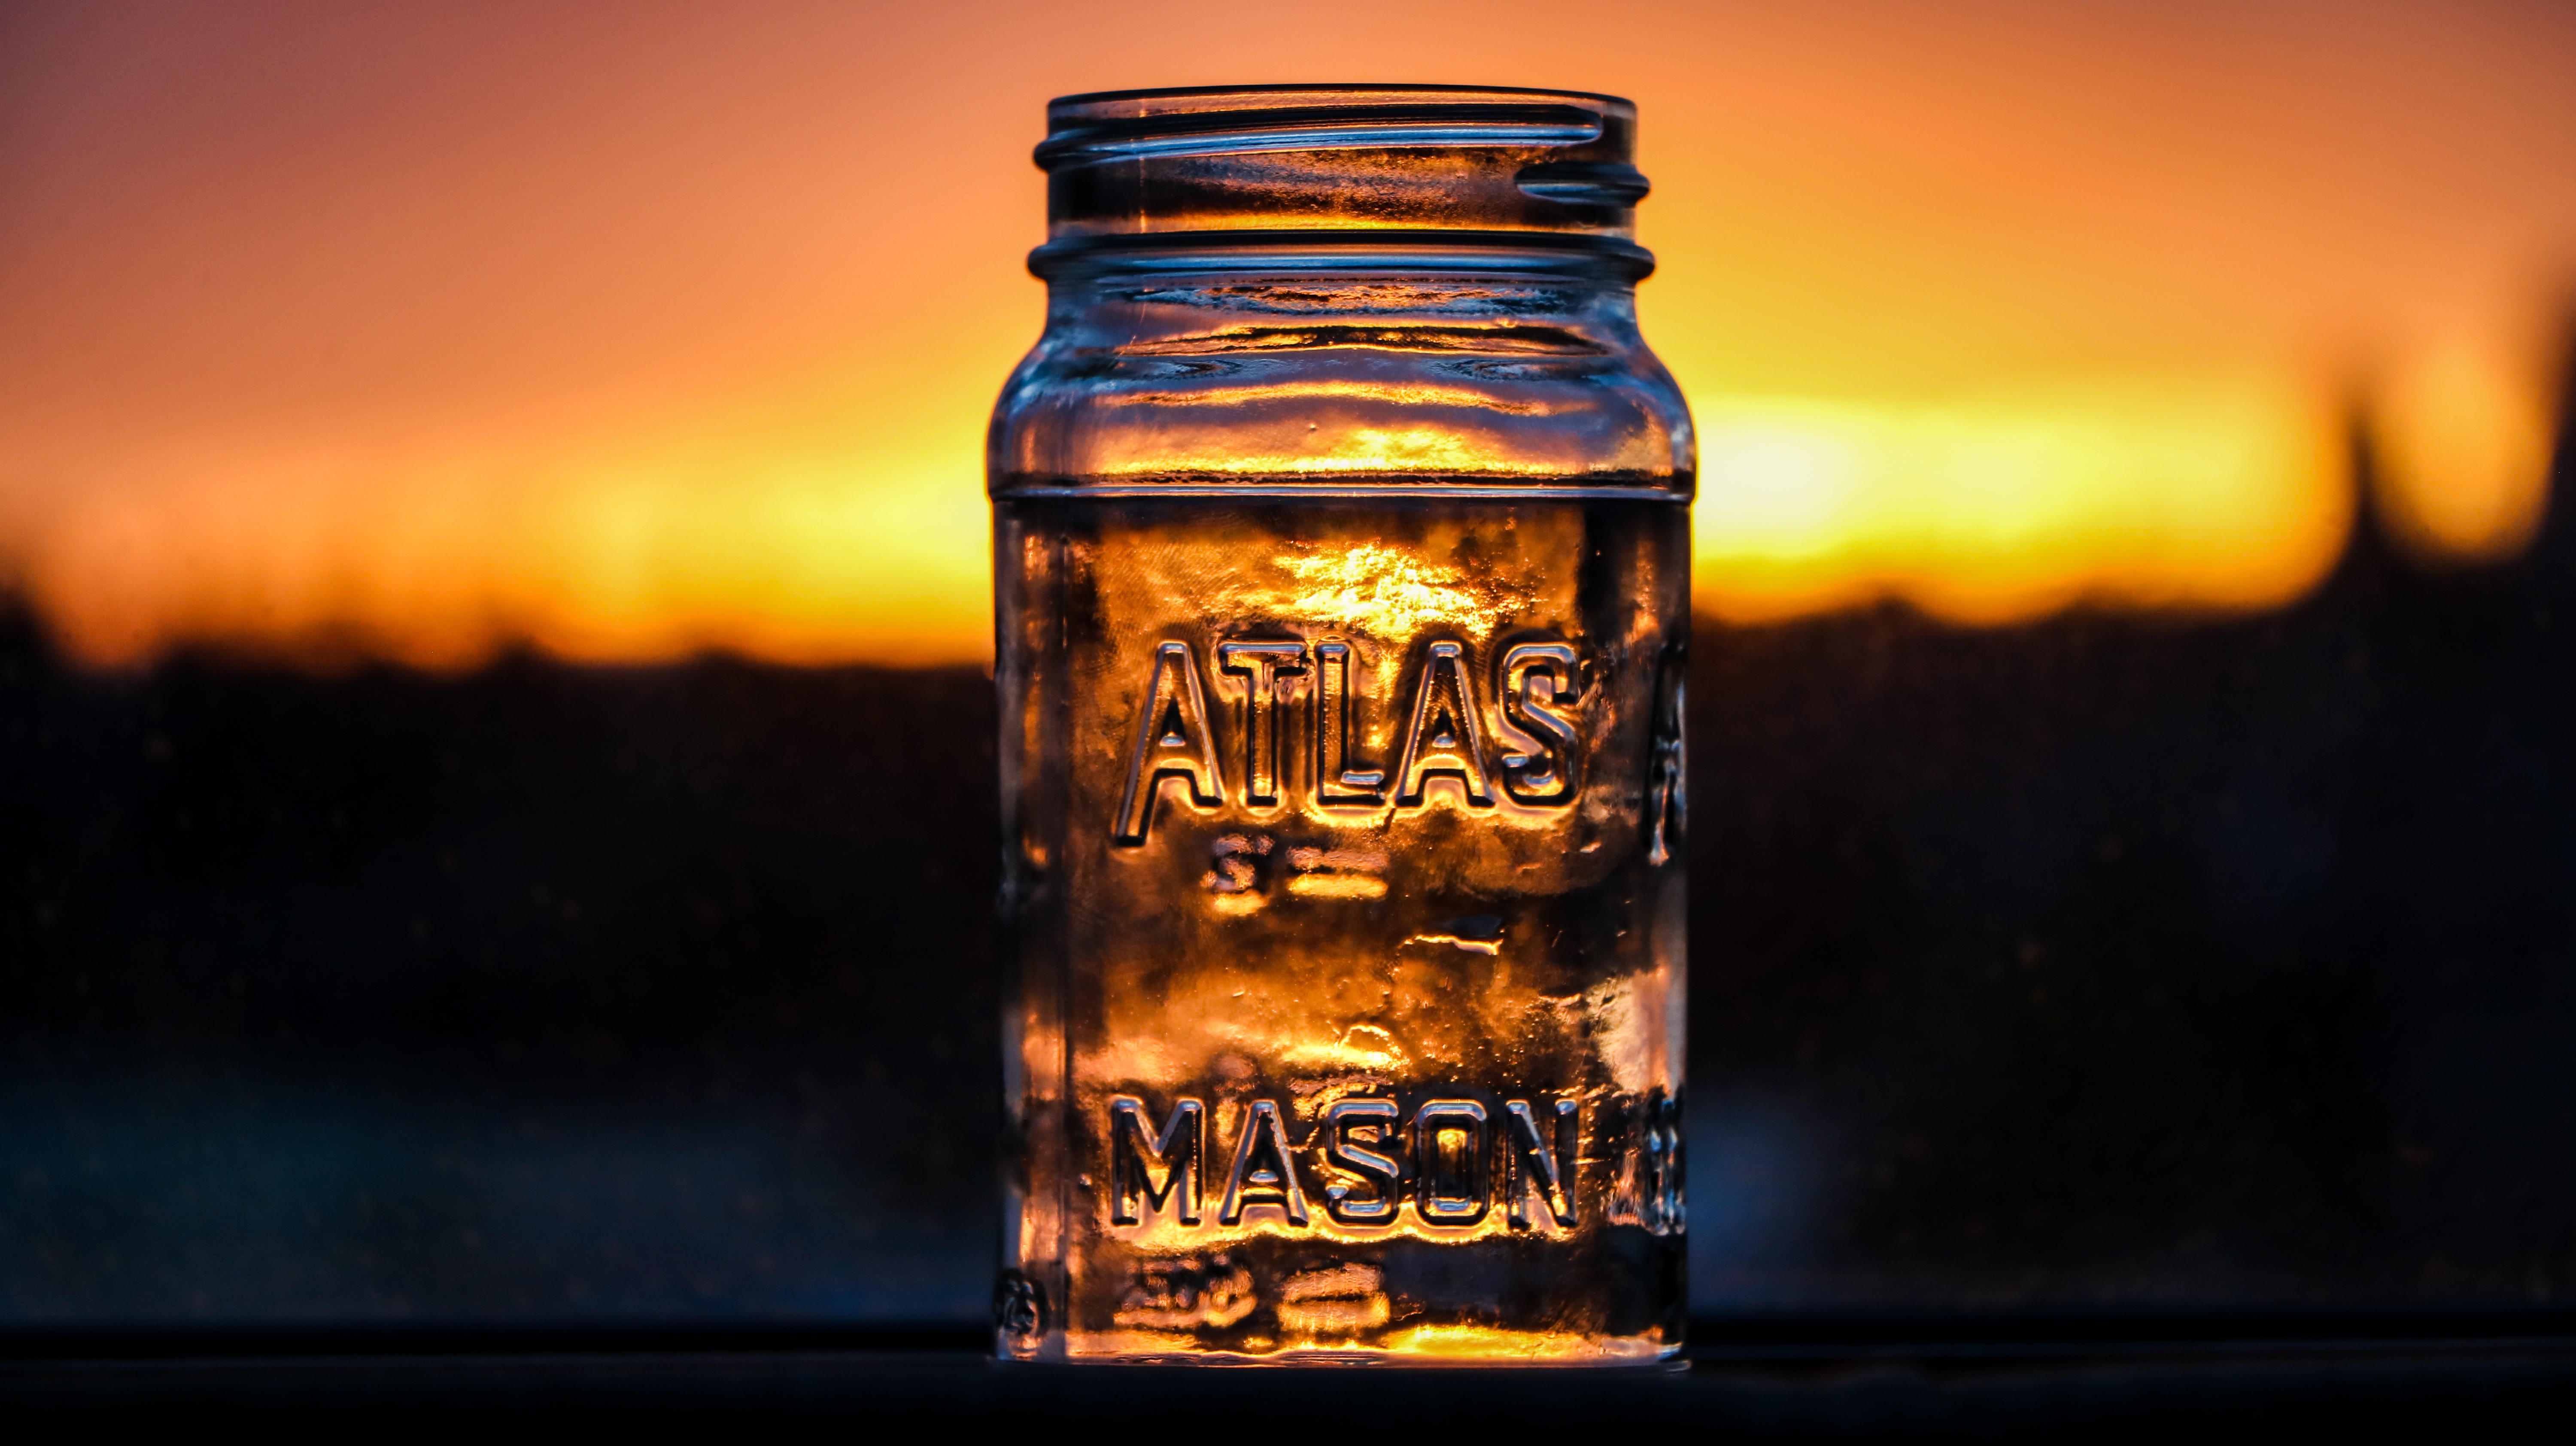 Mason Jar at sun set.